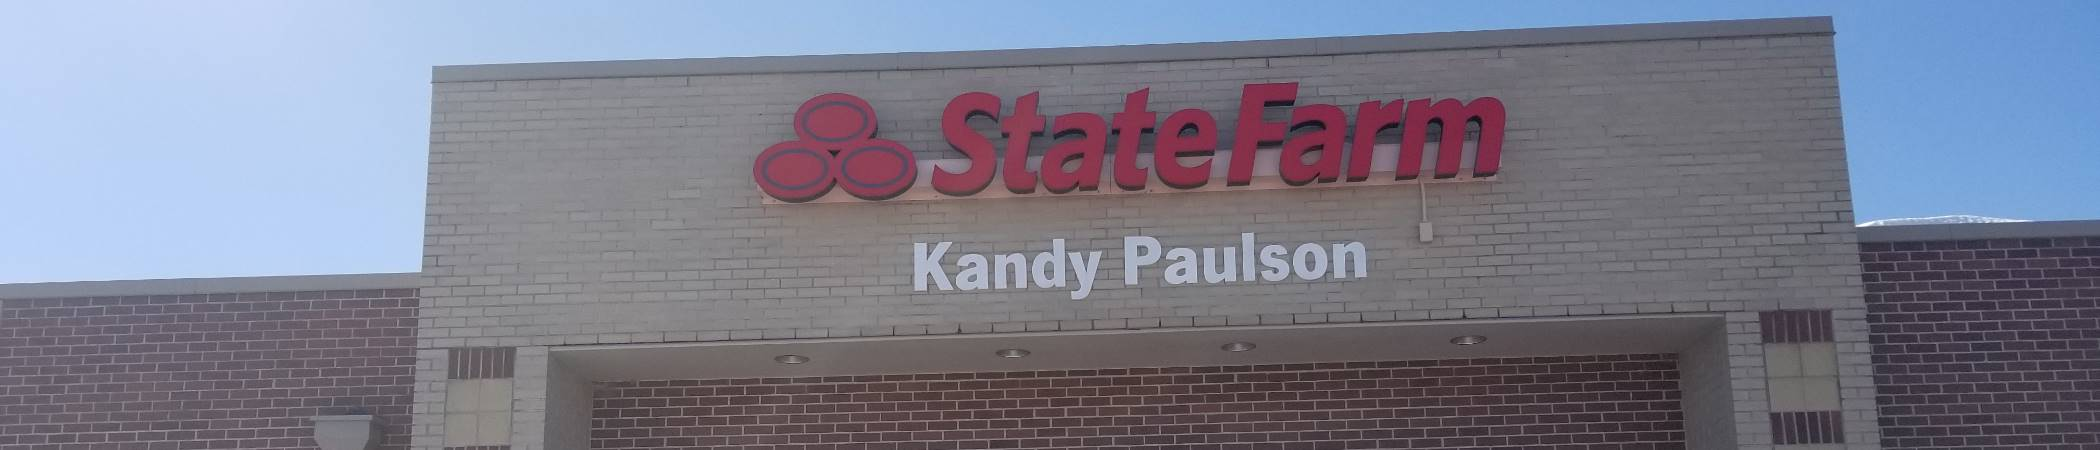 <%= city %> <%= state %> State Farm Insurance Agent <%= name %>